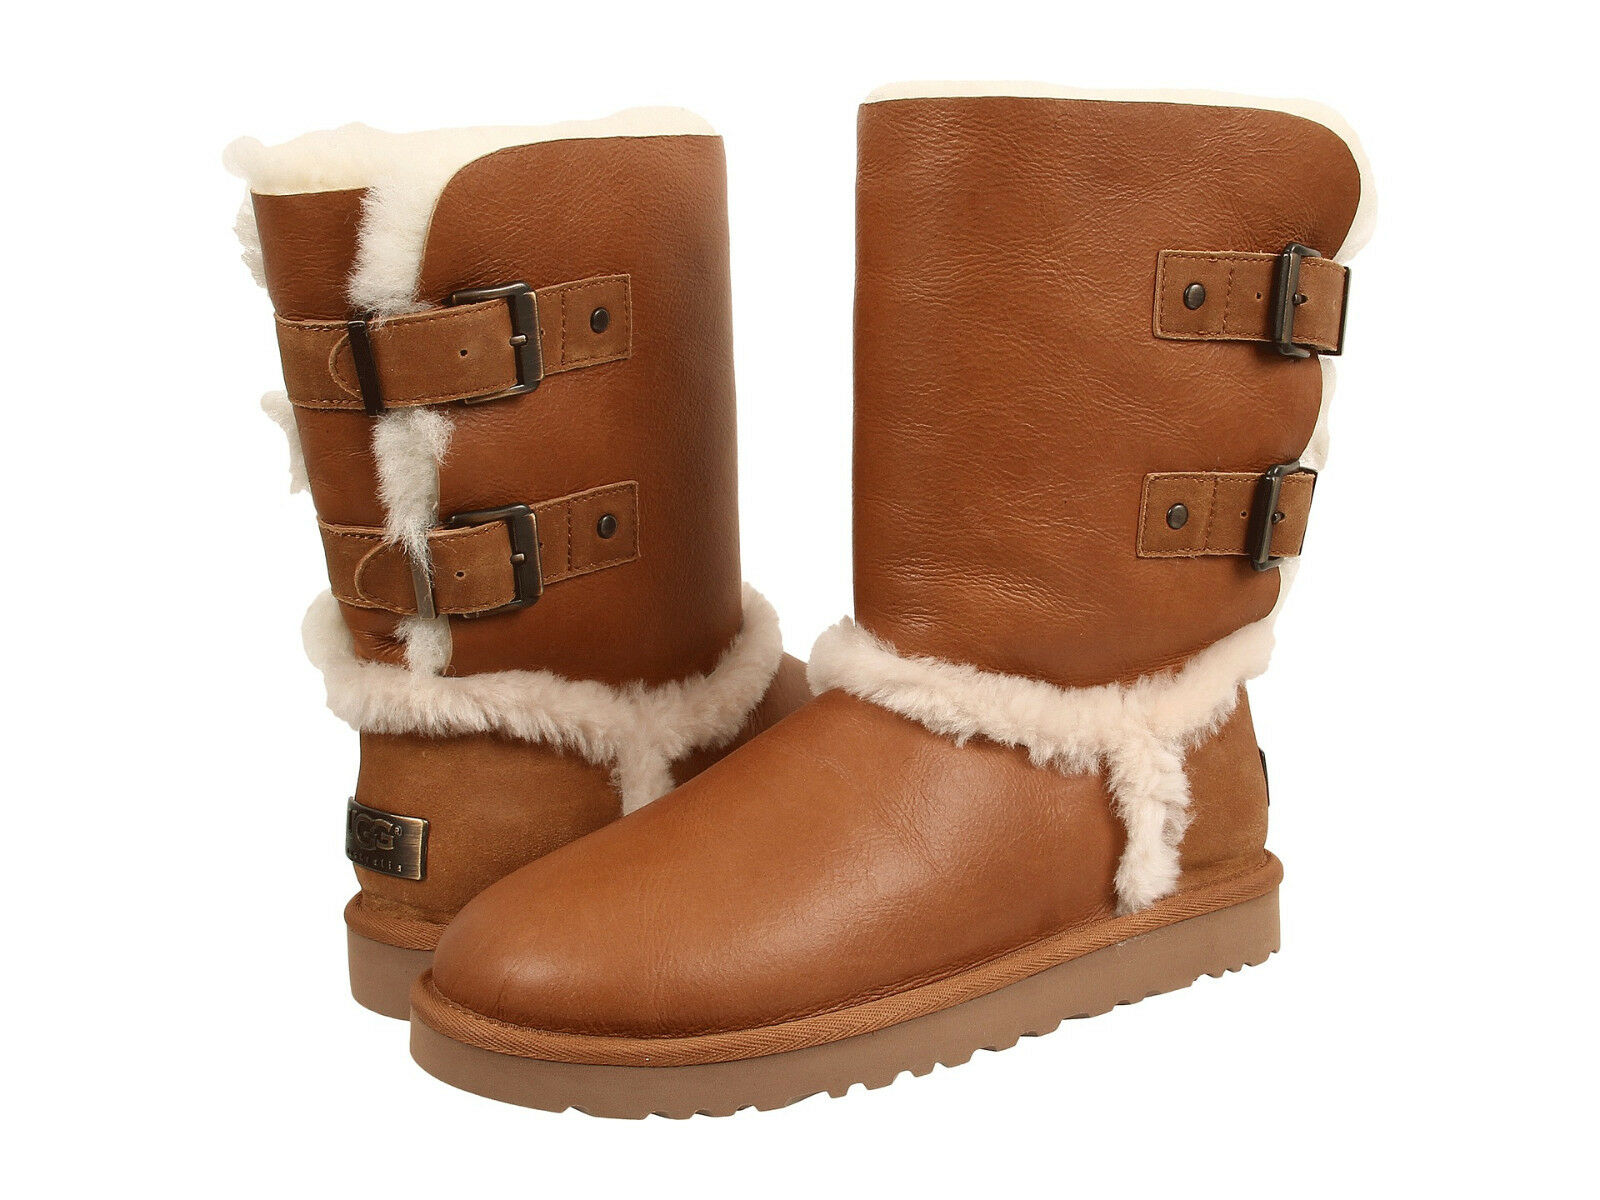 a63e3a34ee9 Women UGG Australia Skylah Boot 1008229 V. Chestnut Leather 100% Authentic  B New